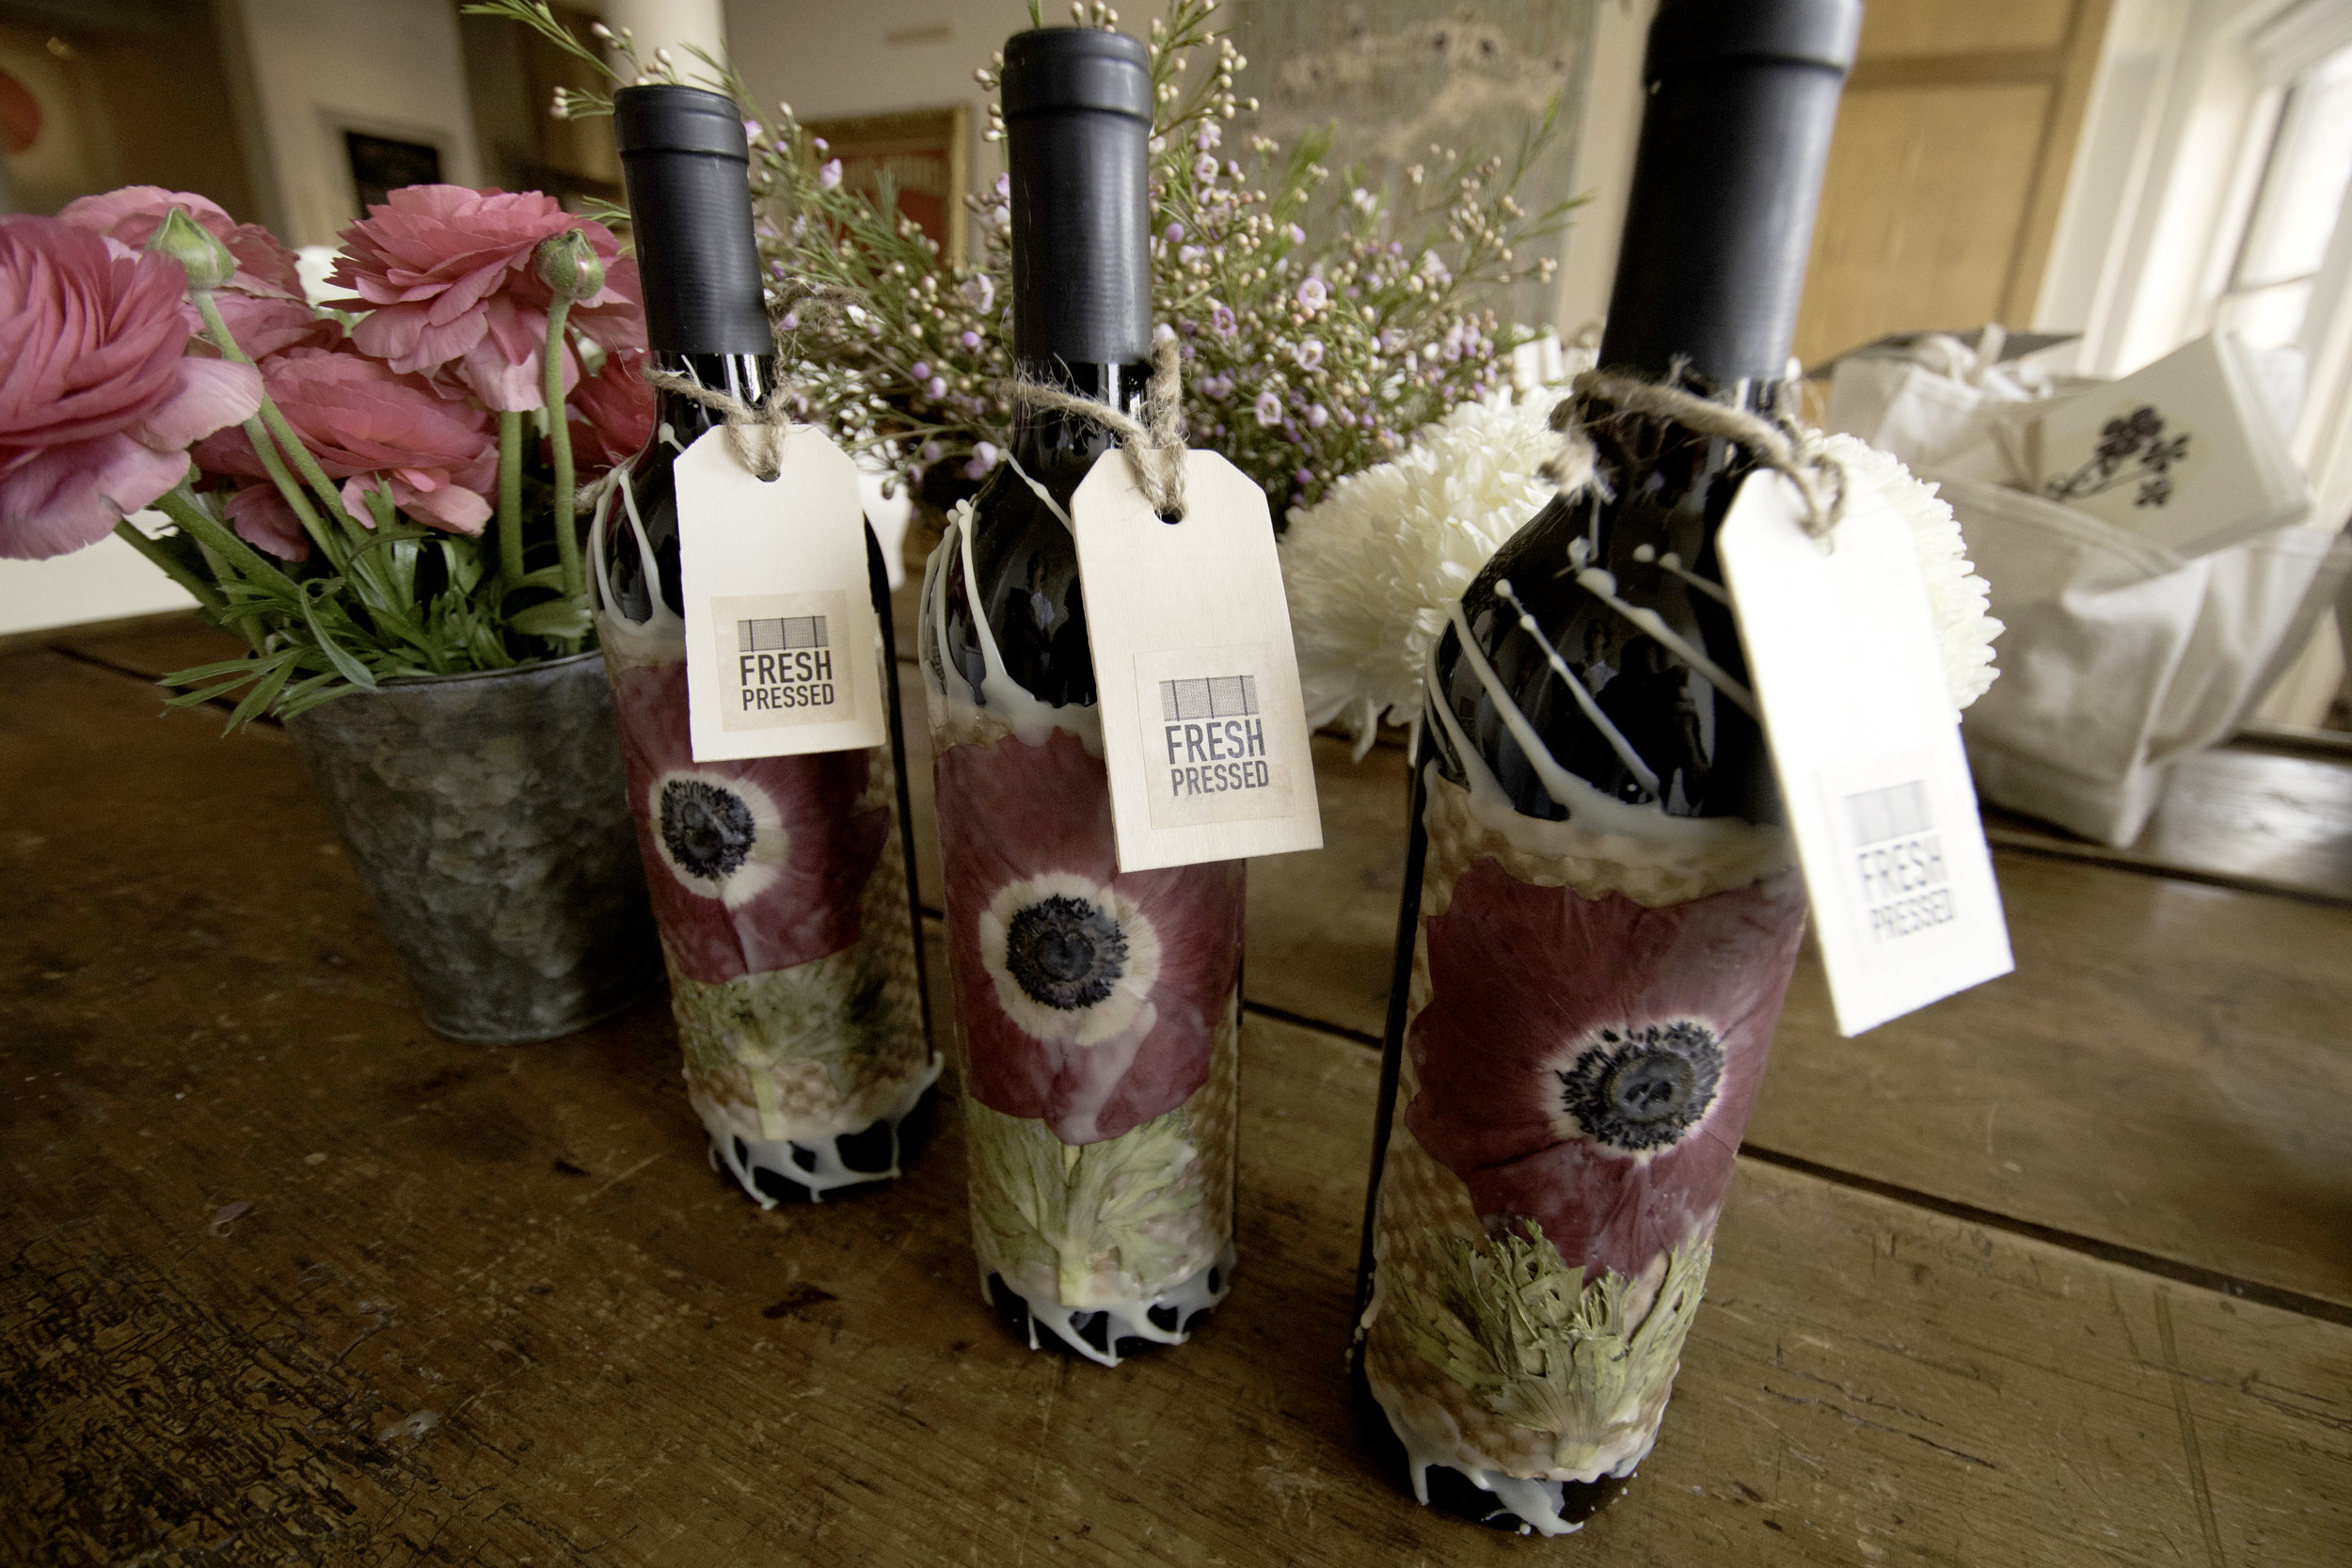 We'll be making all kinds of wine bottles in class too….